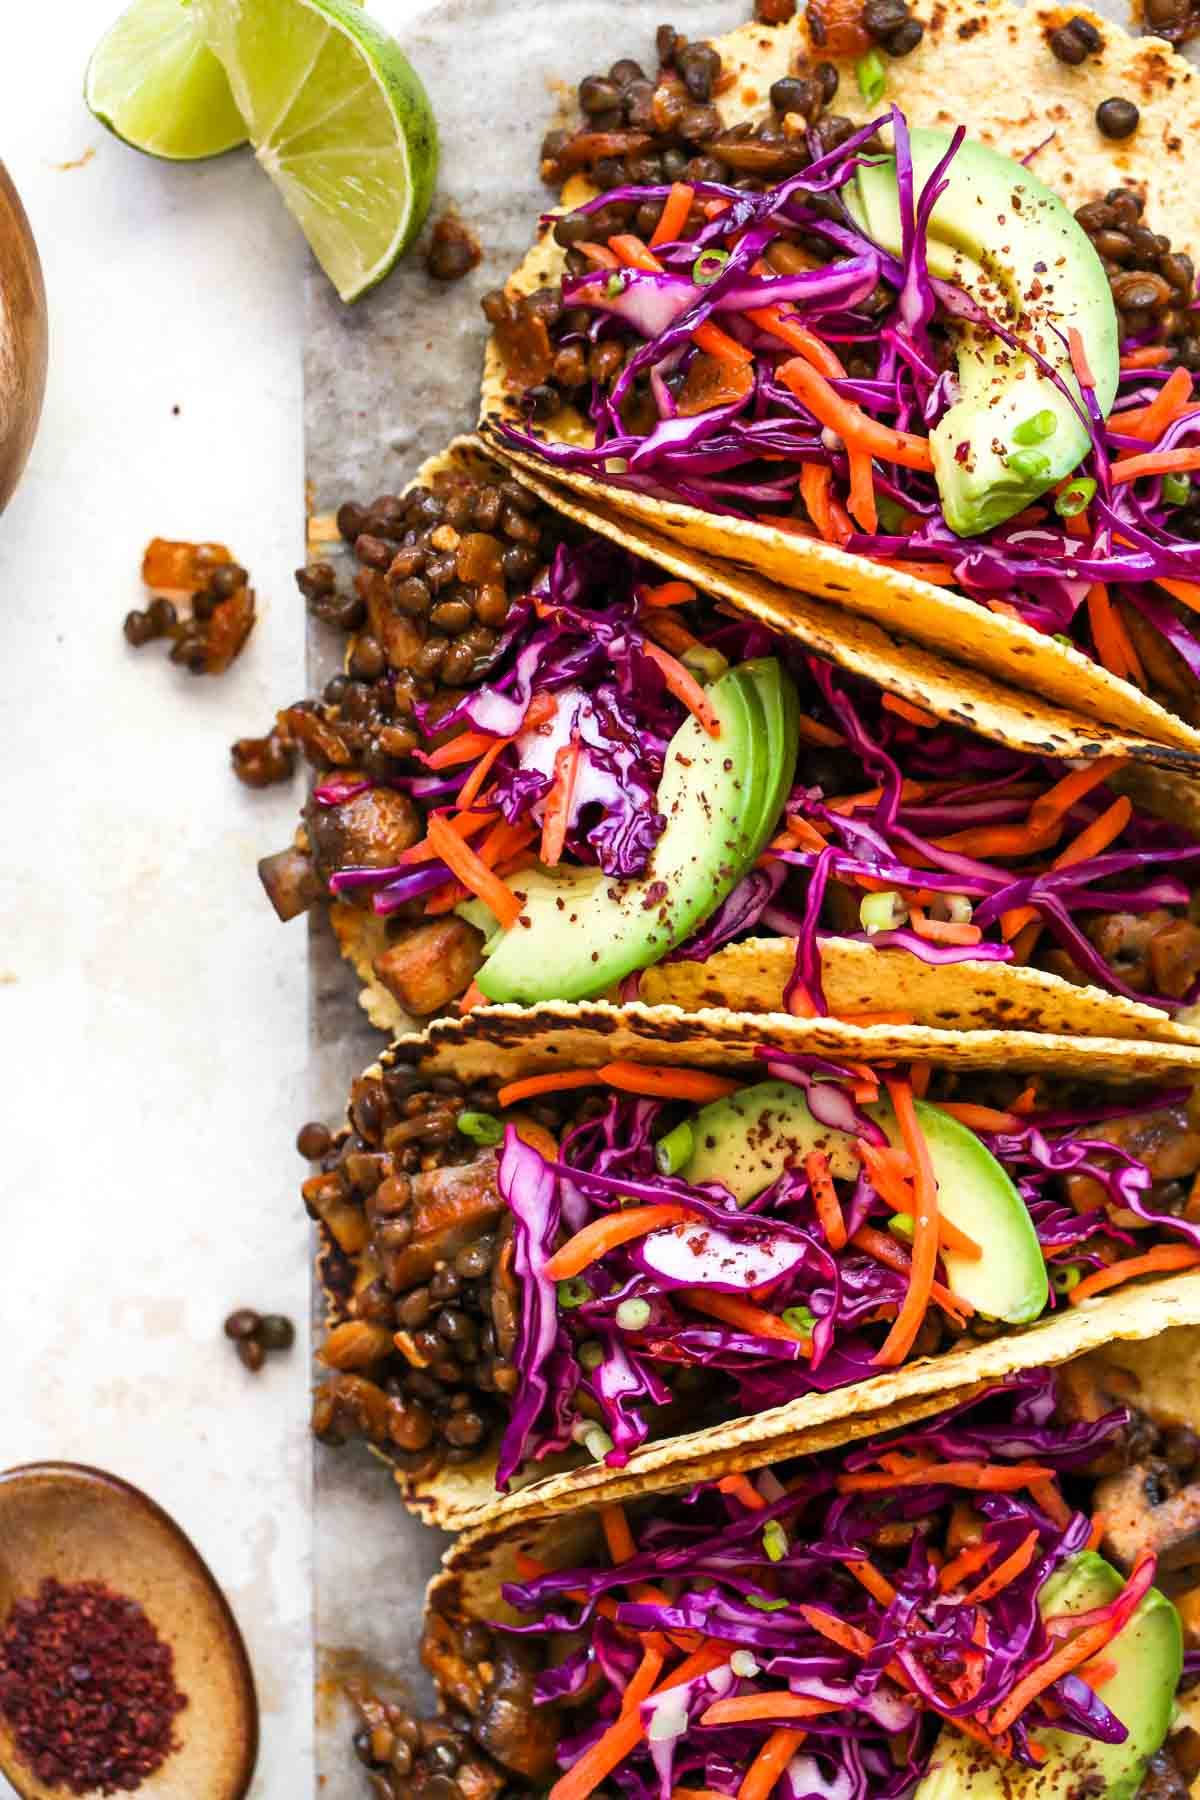 Mushroom and lentil tacos topped with cabbage slaw and avocado